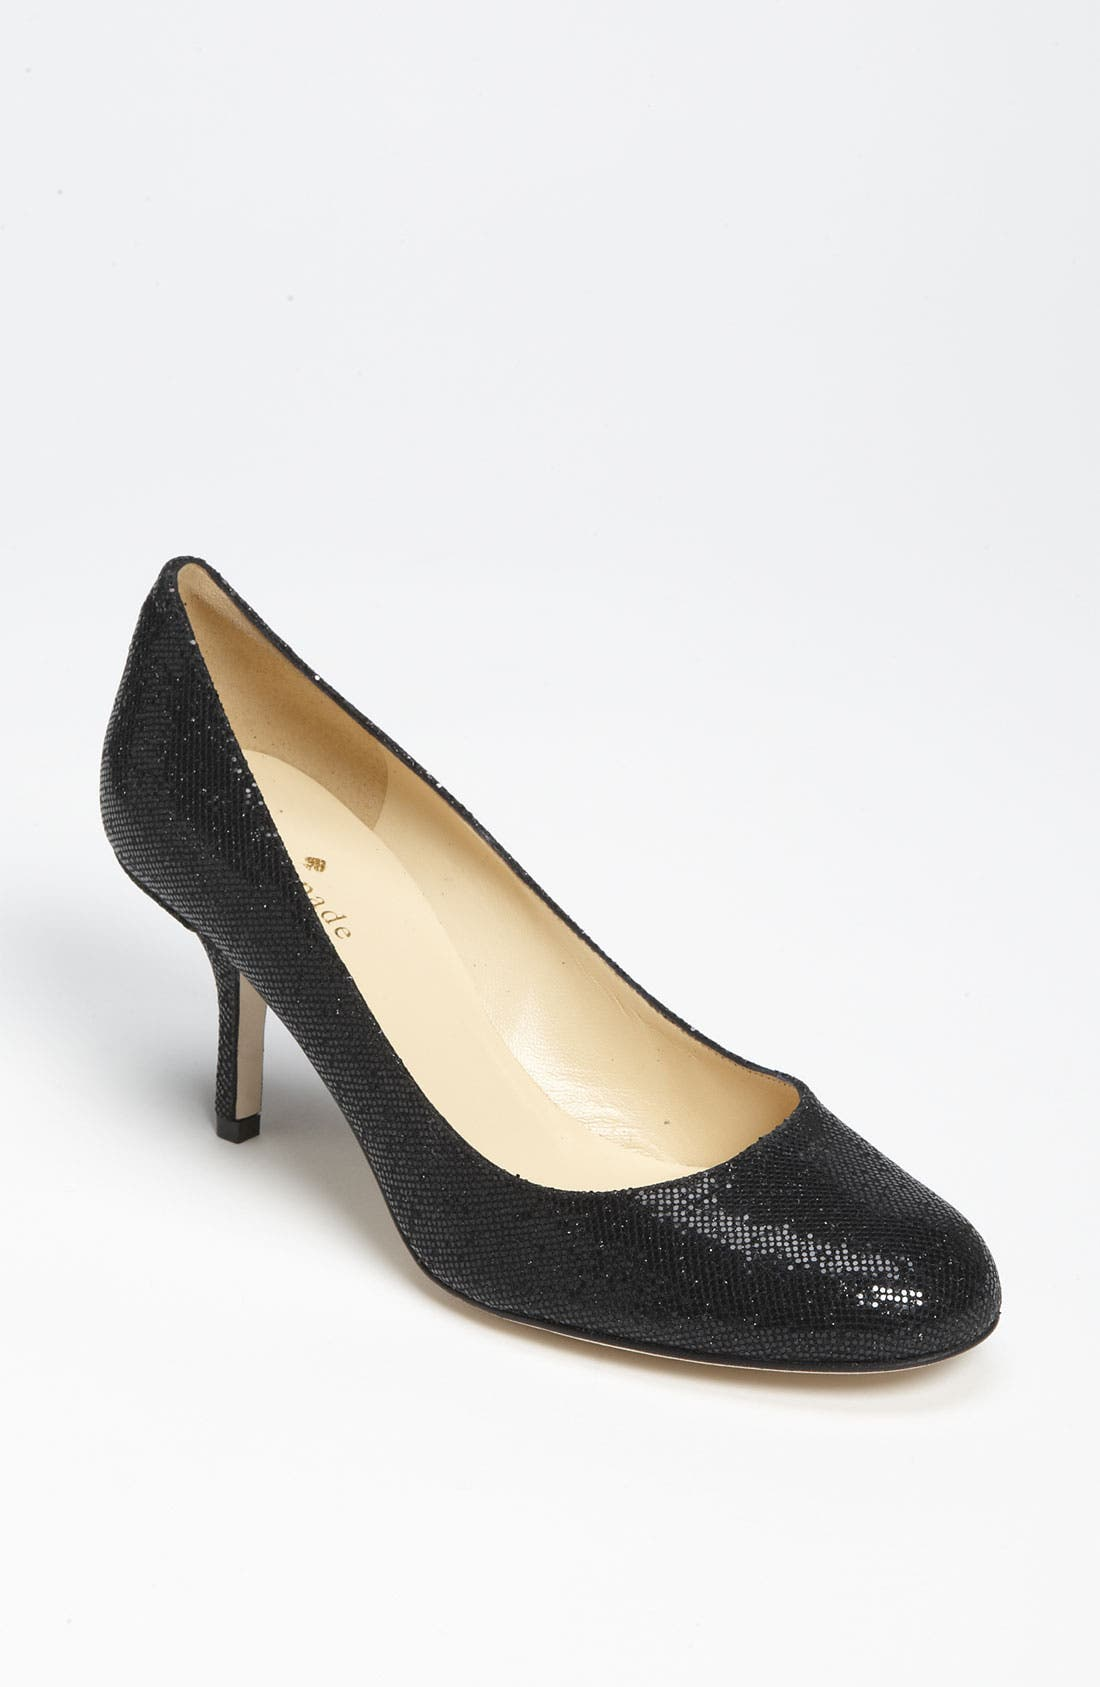 Alternate Image 1 Selected - kate spade new york 'manda' pump